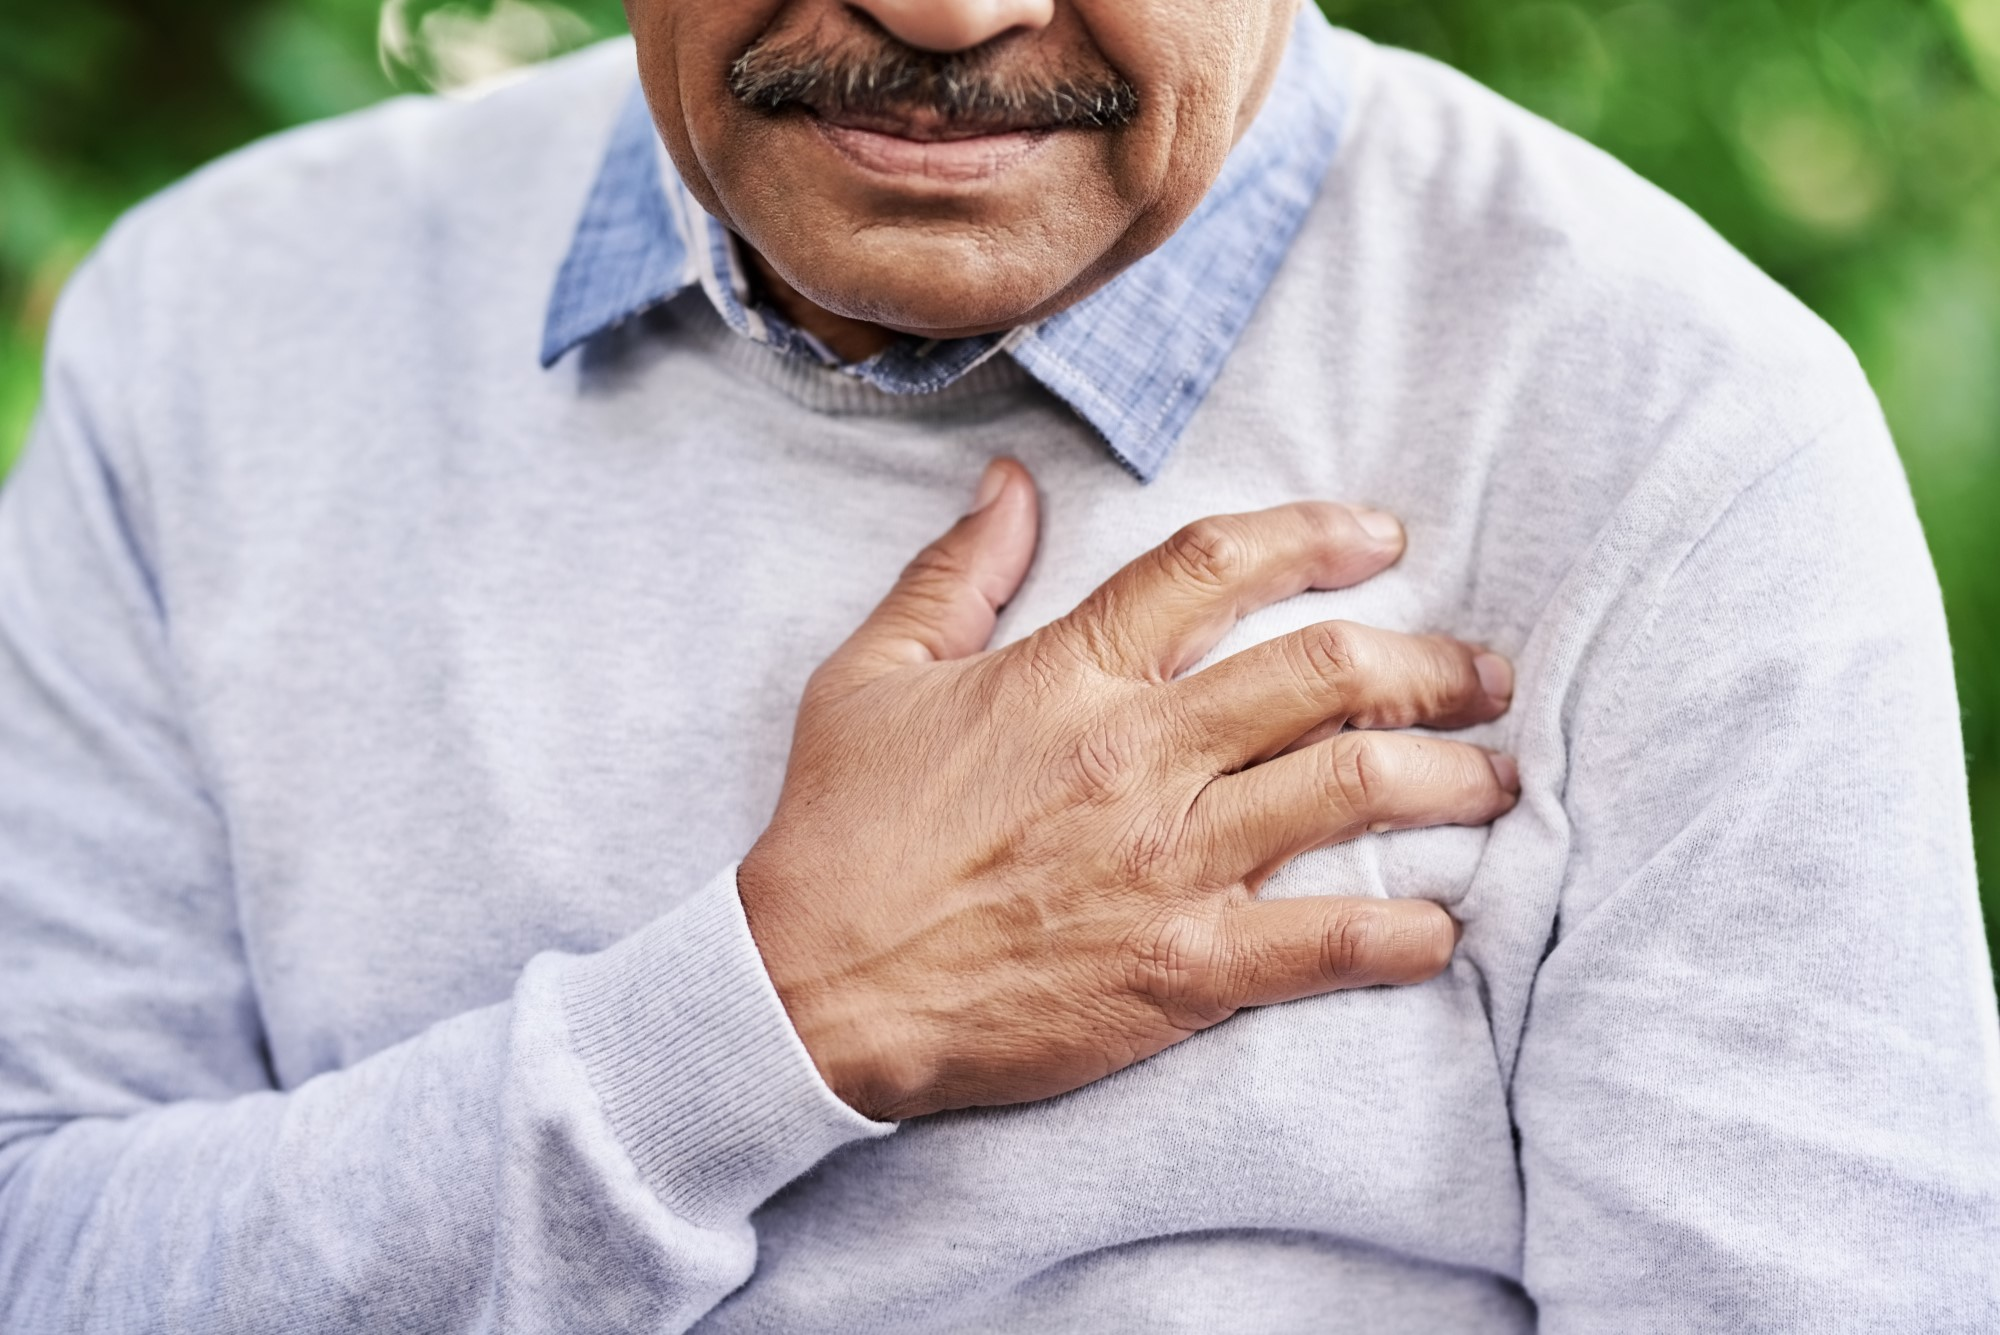 drop-in-ed-visits-for-cardiac-conditions-tied-to-later-cardiac-deaths